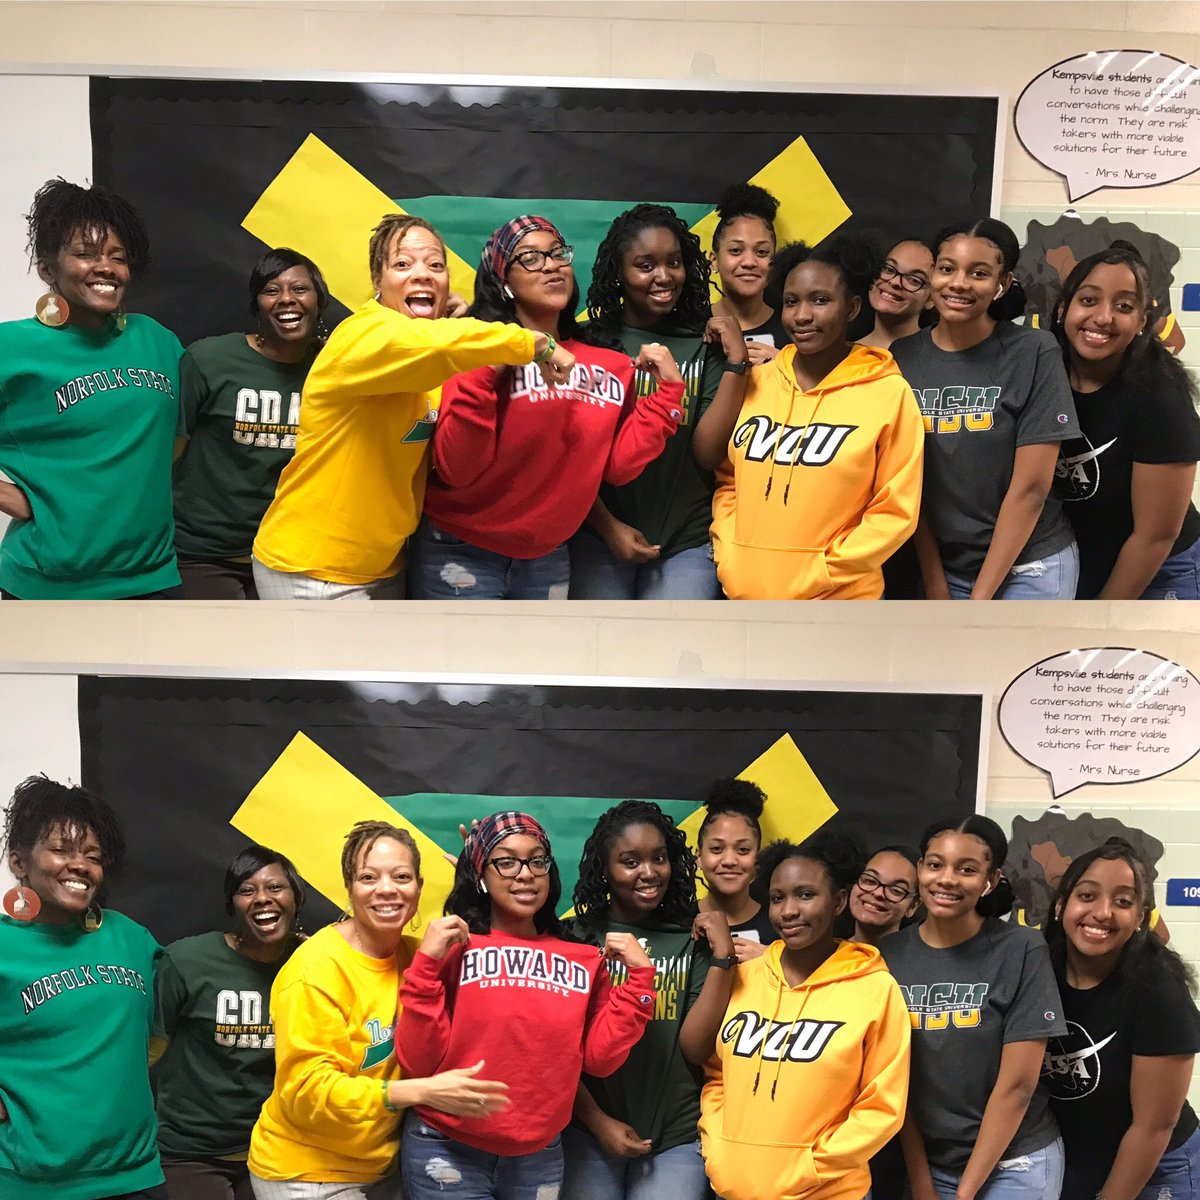 HBCU with our BSU🙌🏼 @KHS_Chiefs